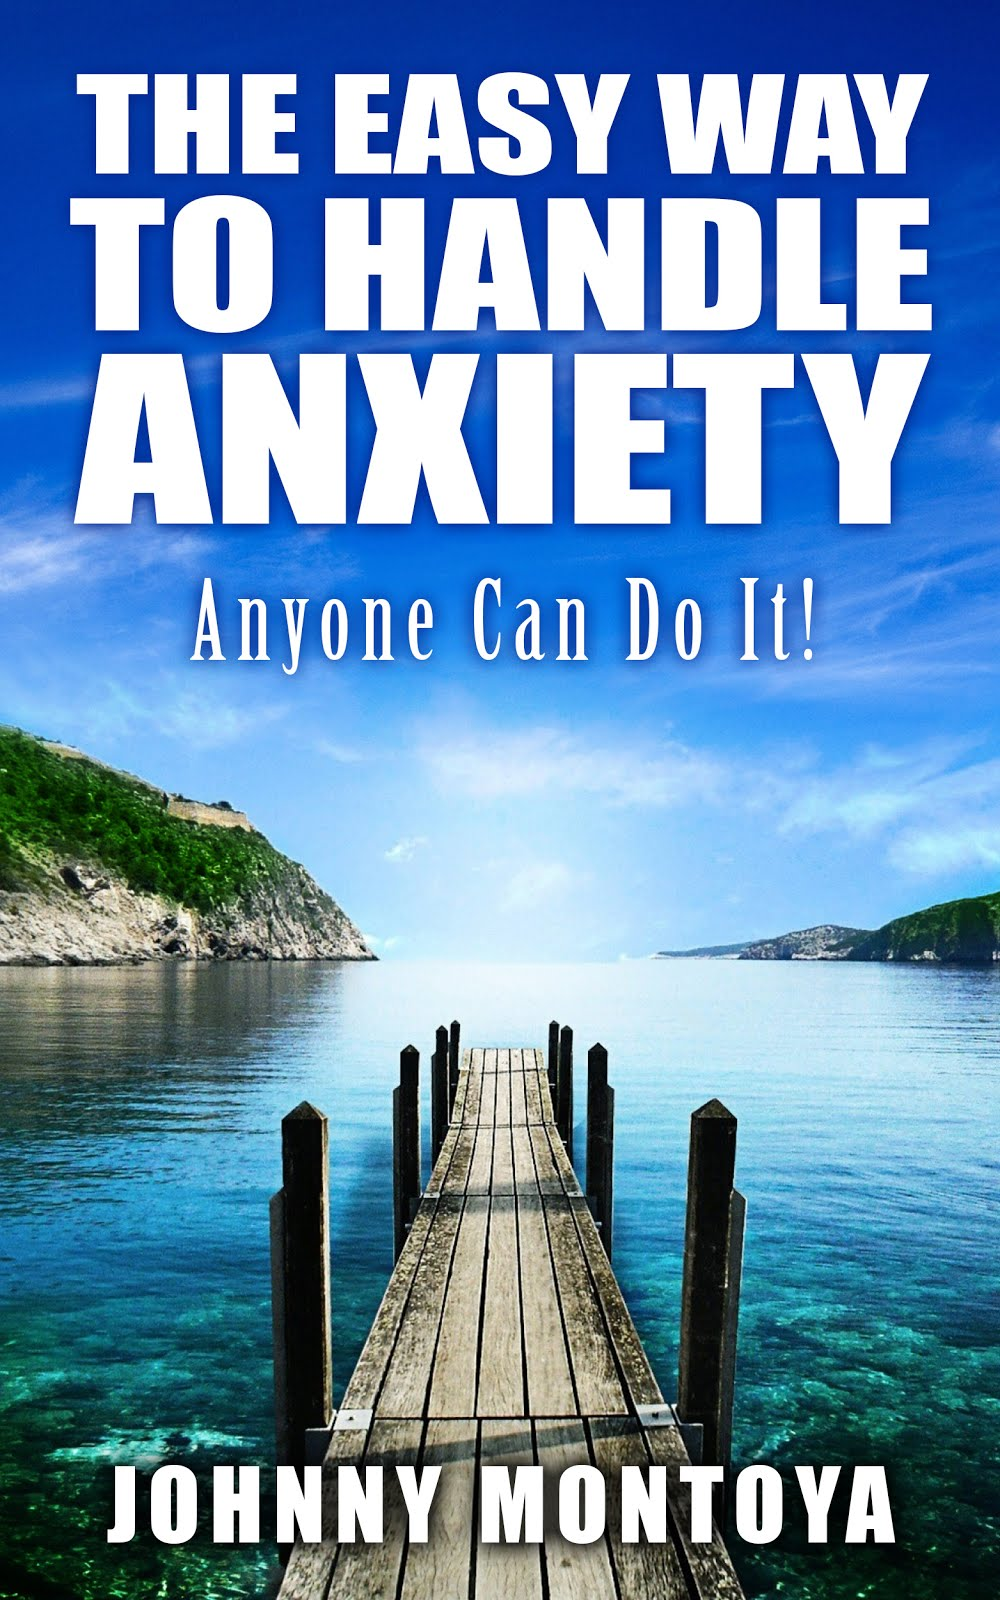 The Easy Way To Handle Anxiety